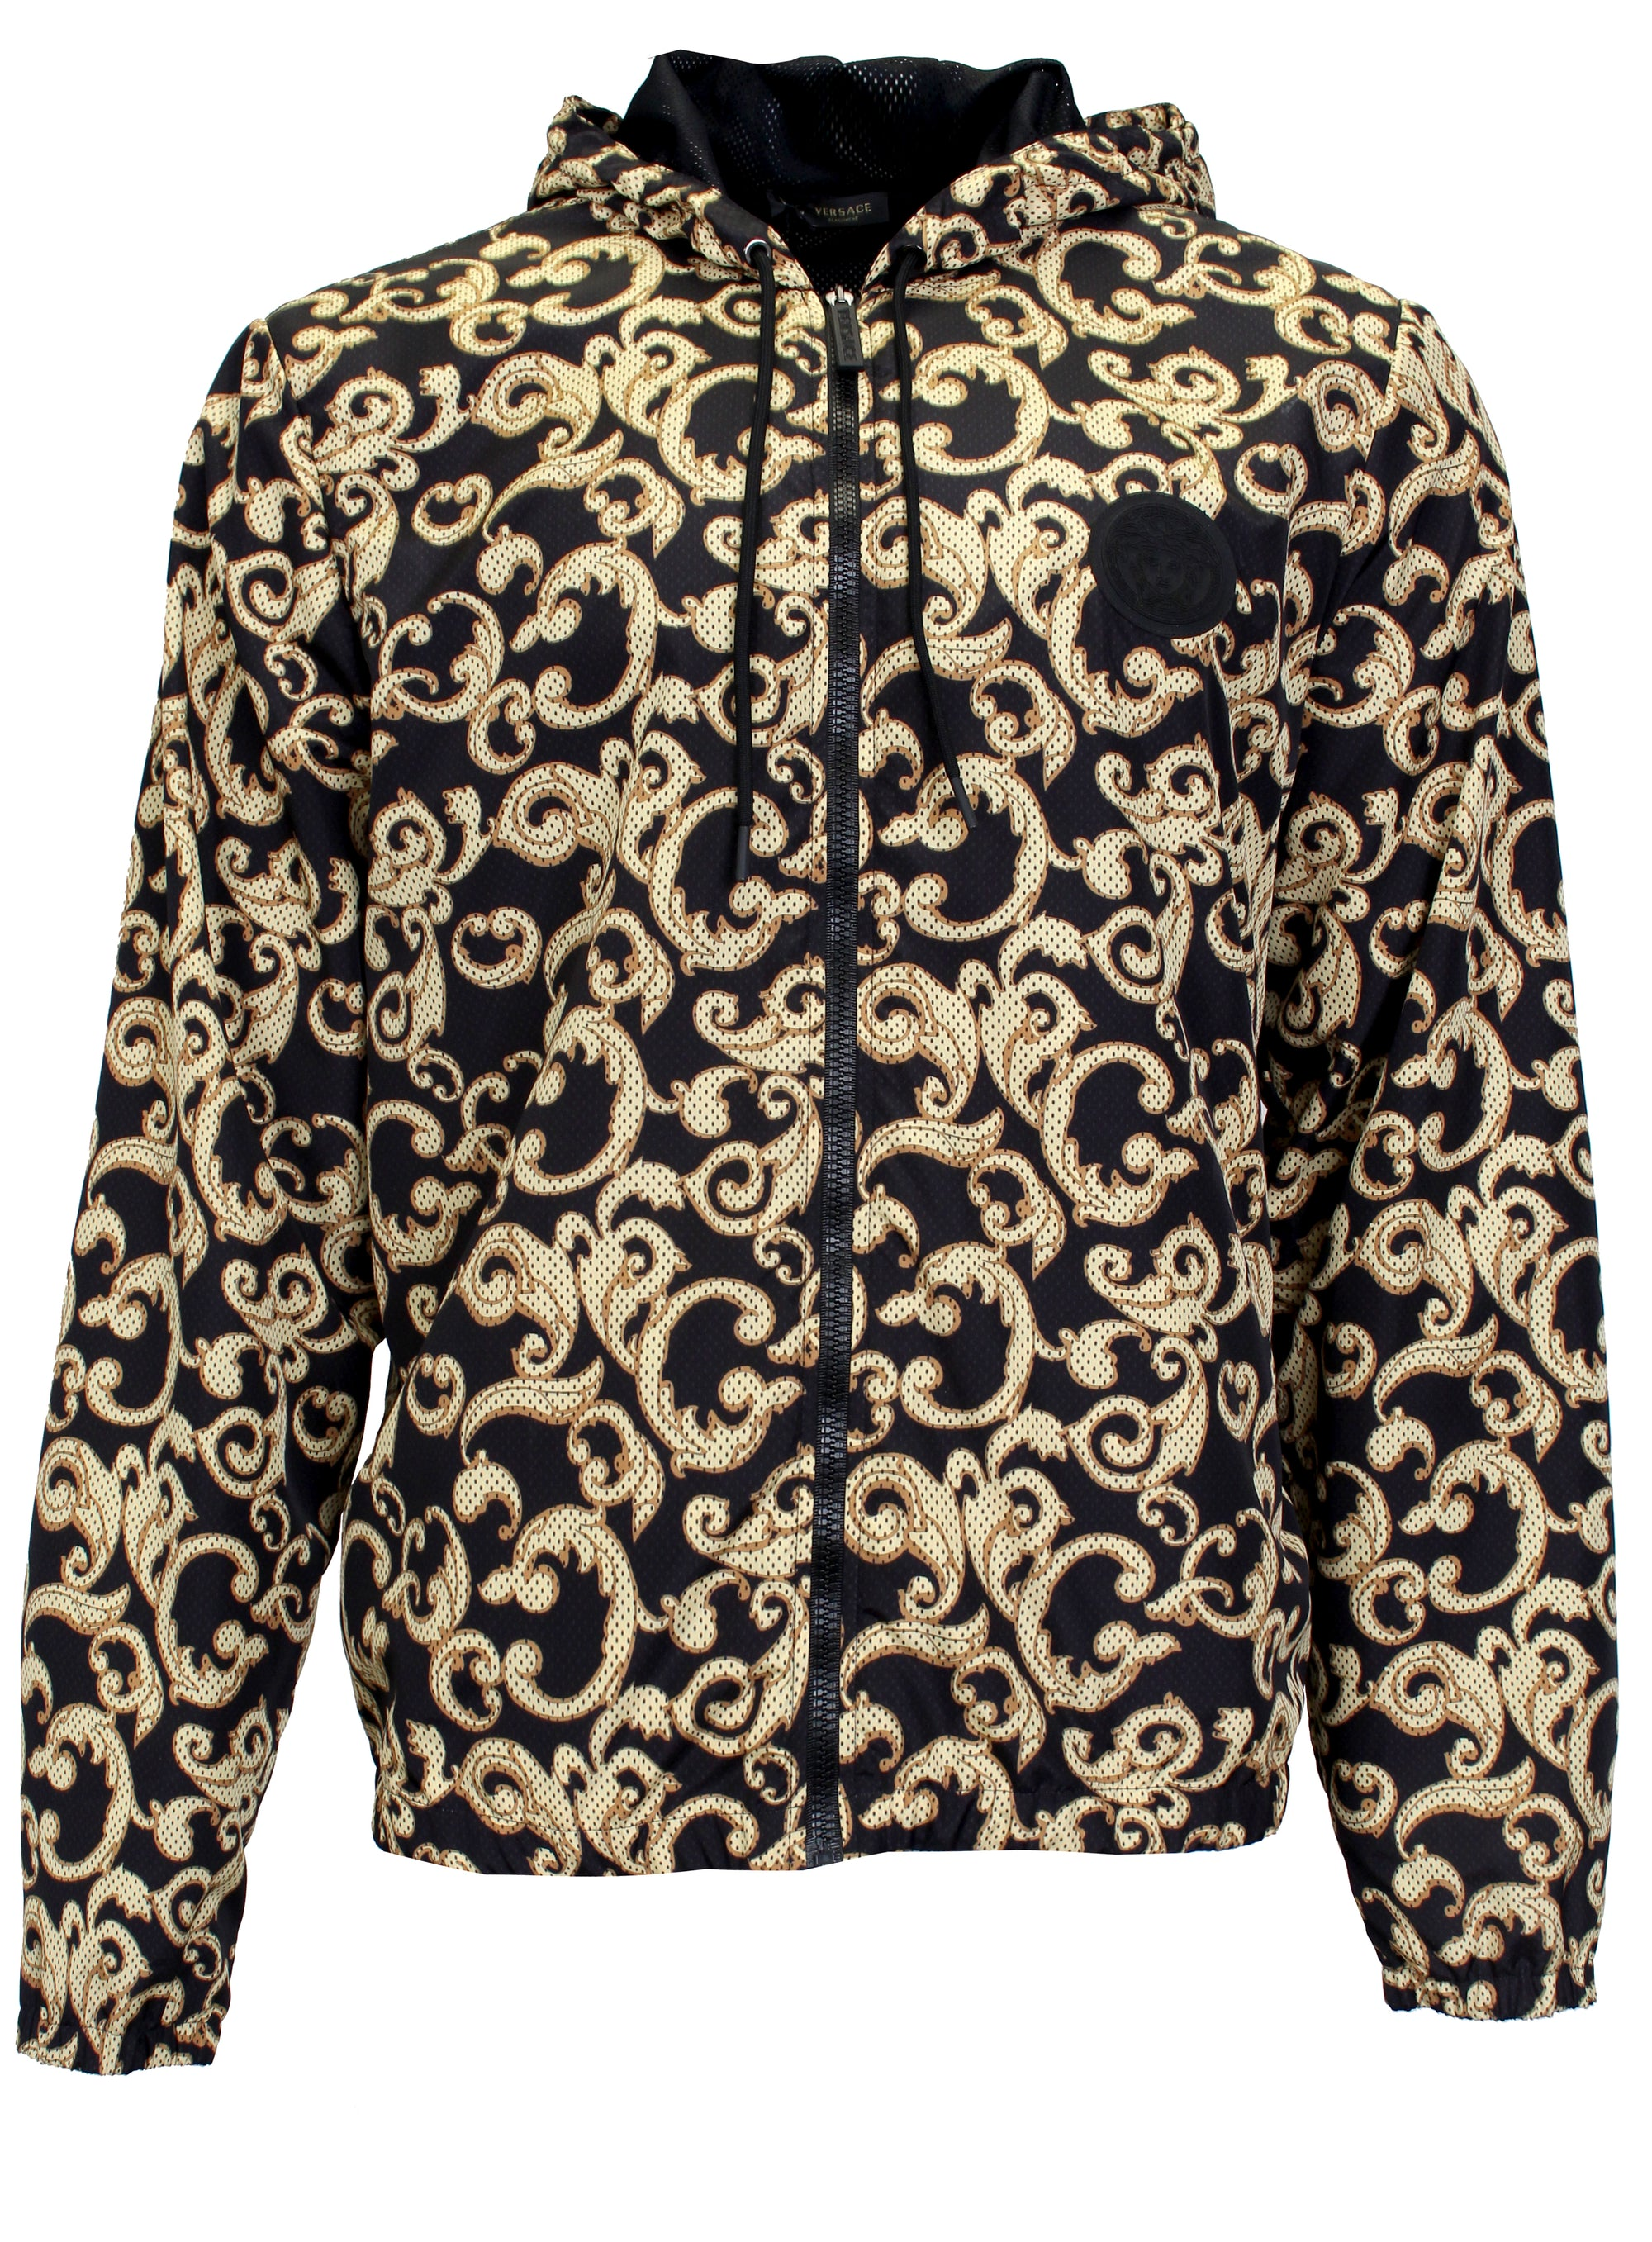 Beach Jacket-Black & Gold